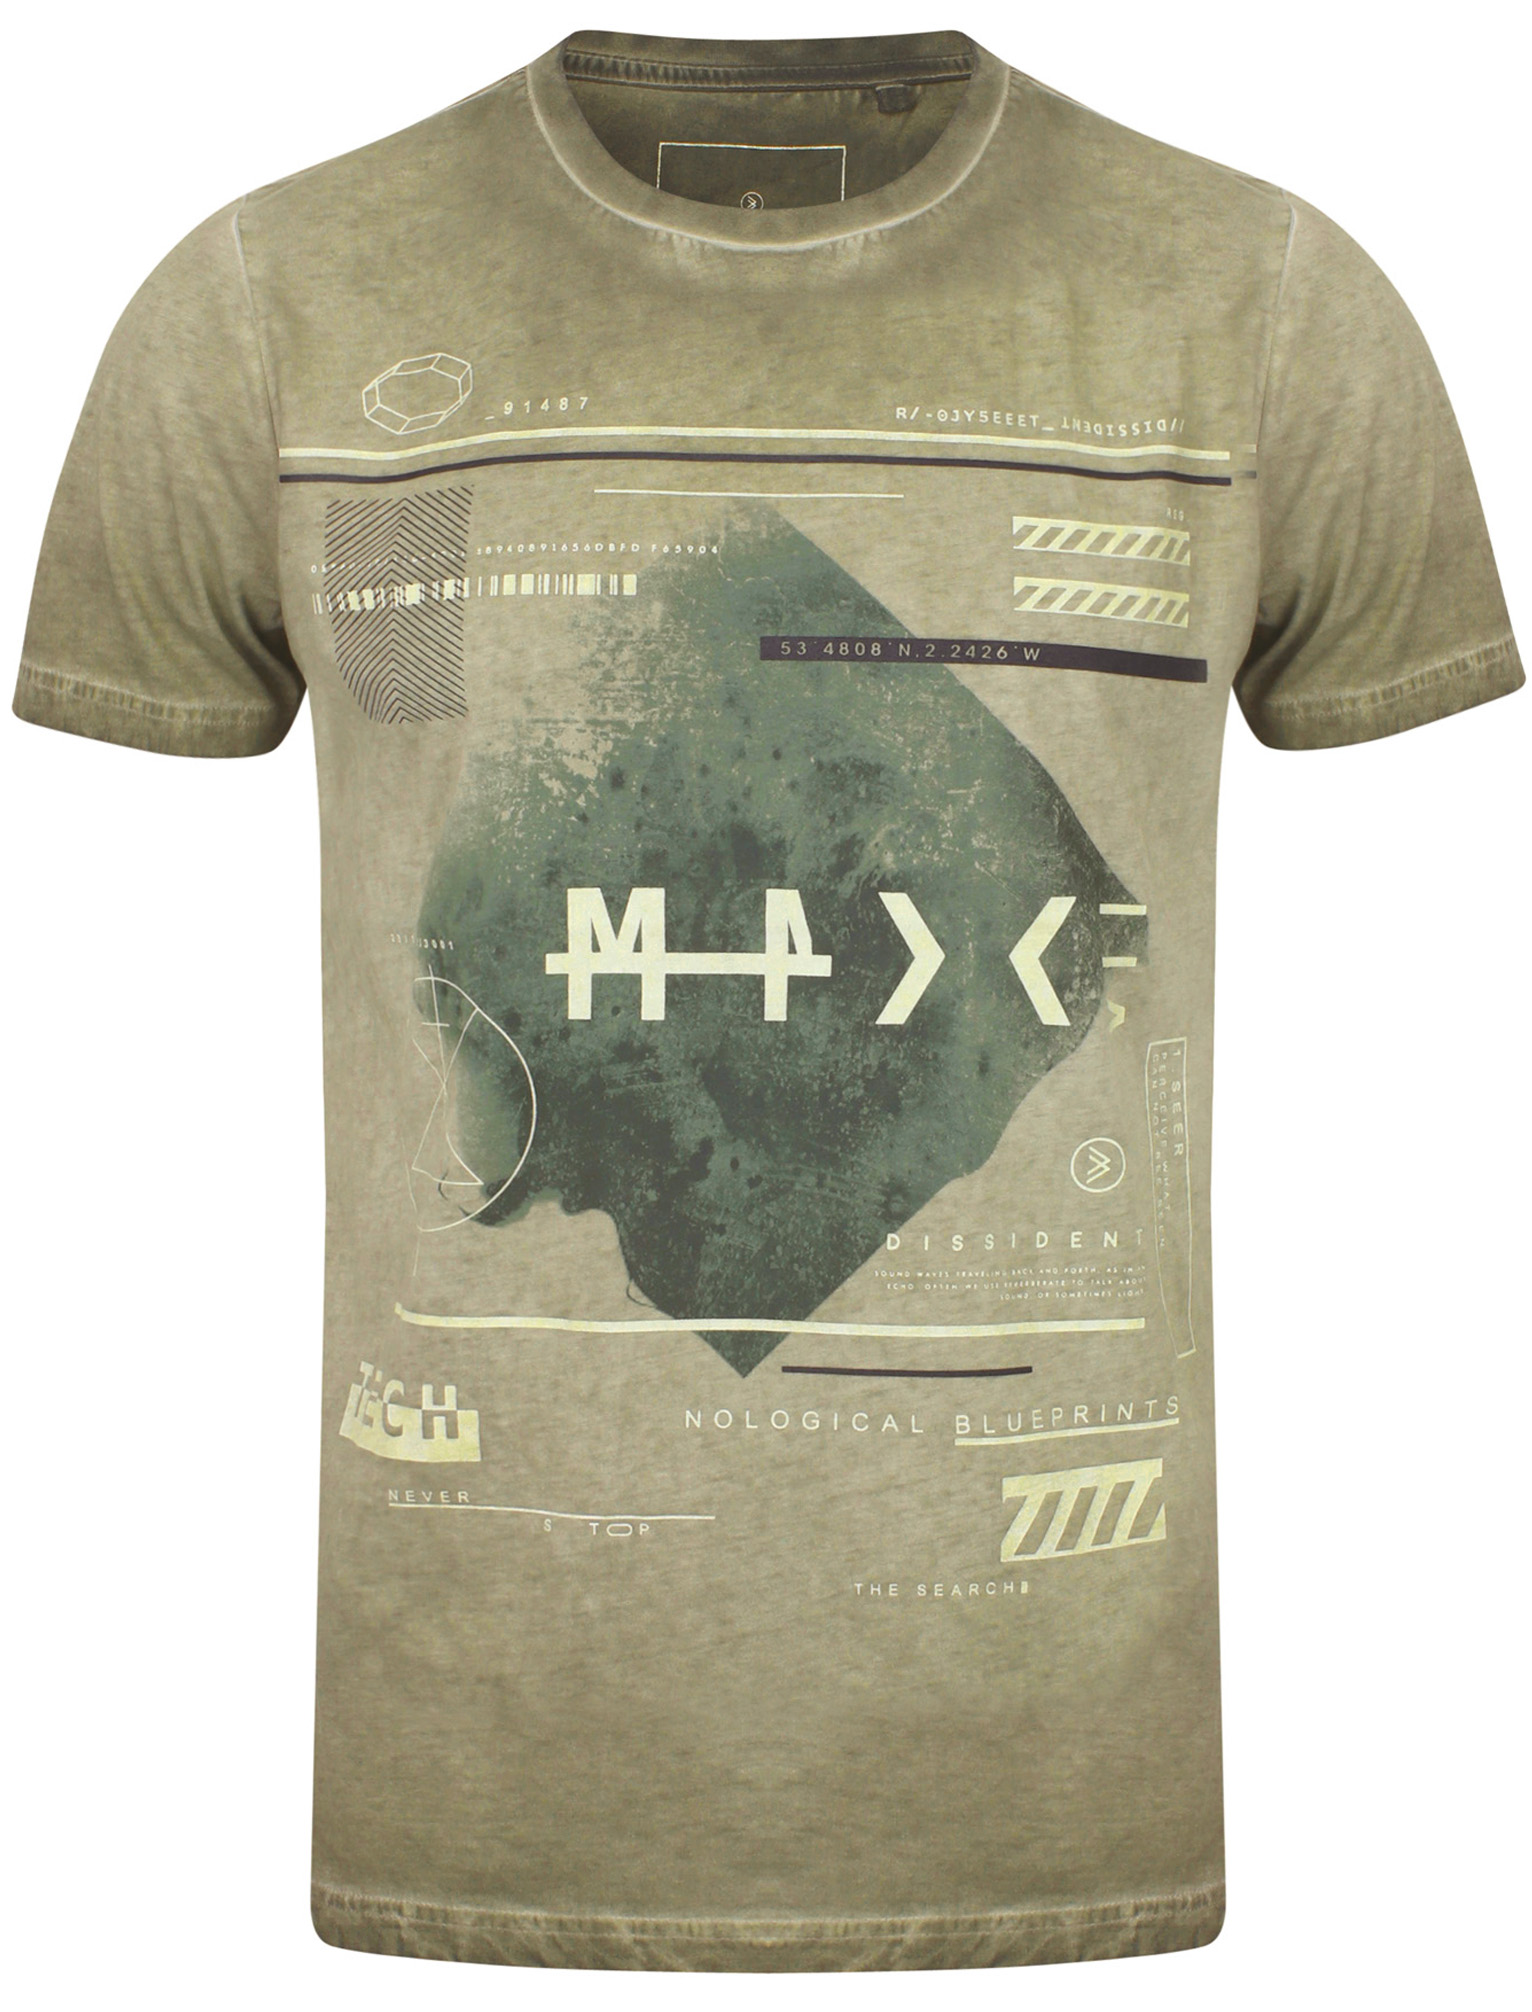 New-Mens-Dissident-Branded-Yasu-Crew-Neck-Cotton-Rich-Printed-T-Shirt-Size-S-XXL